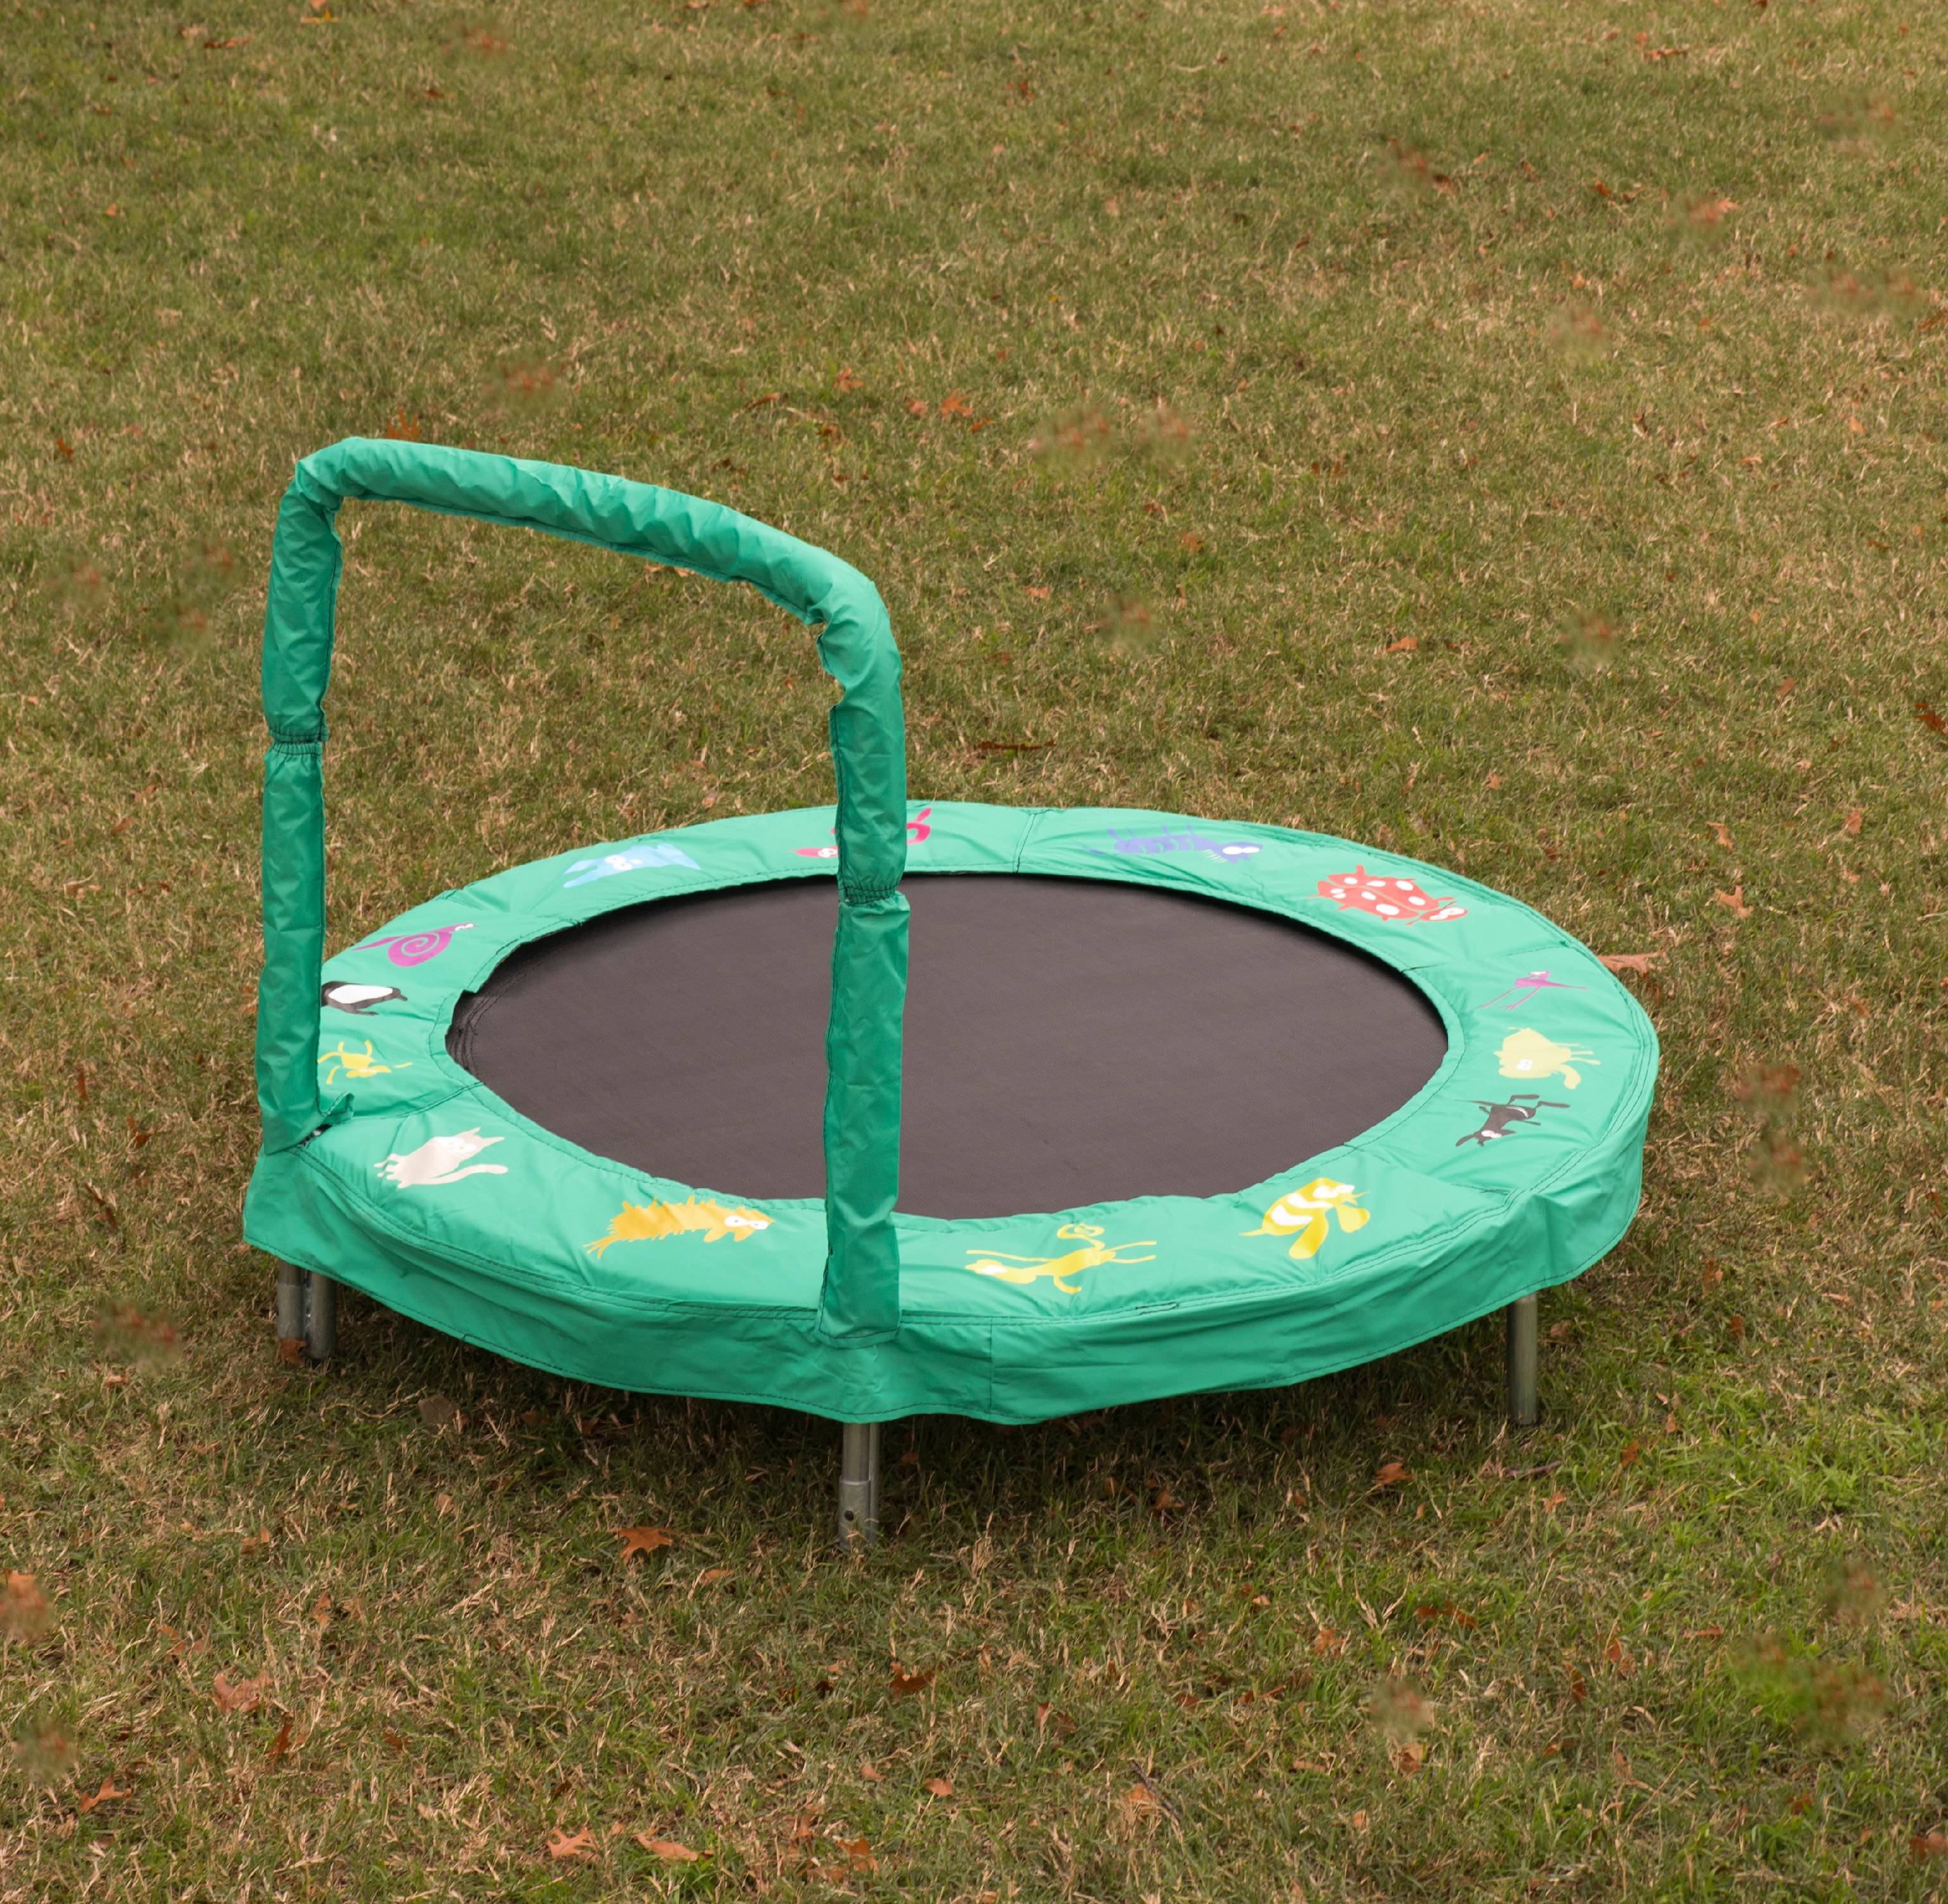 Jump King Jumpking Trampoline 4' Animal Characters Bouncer for Kids